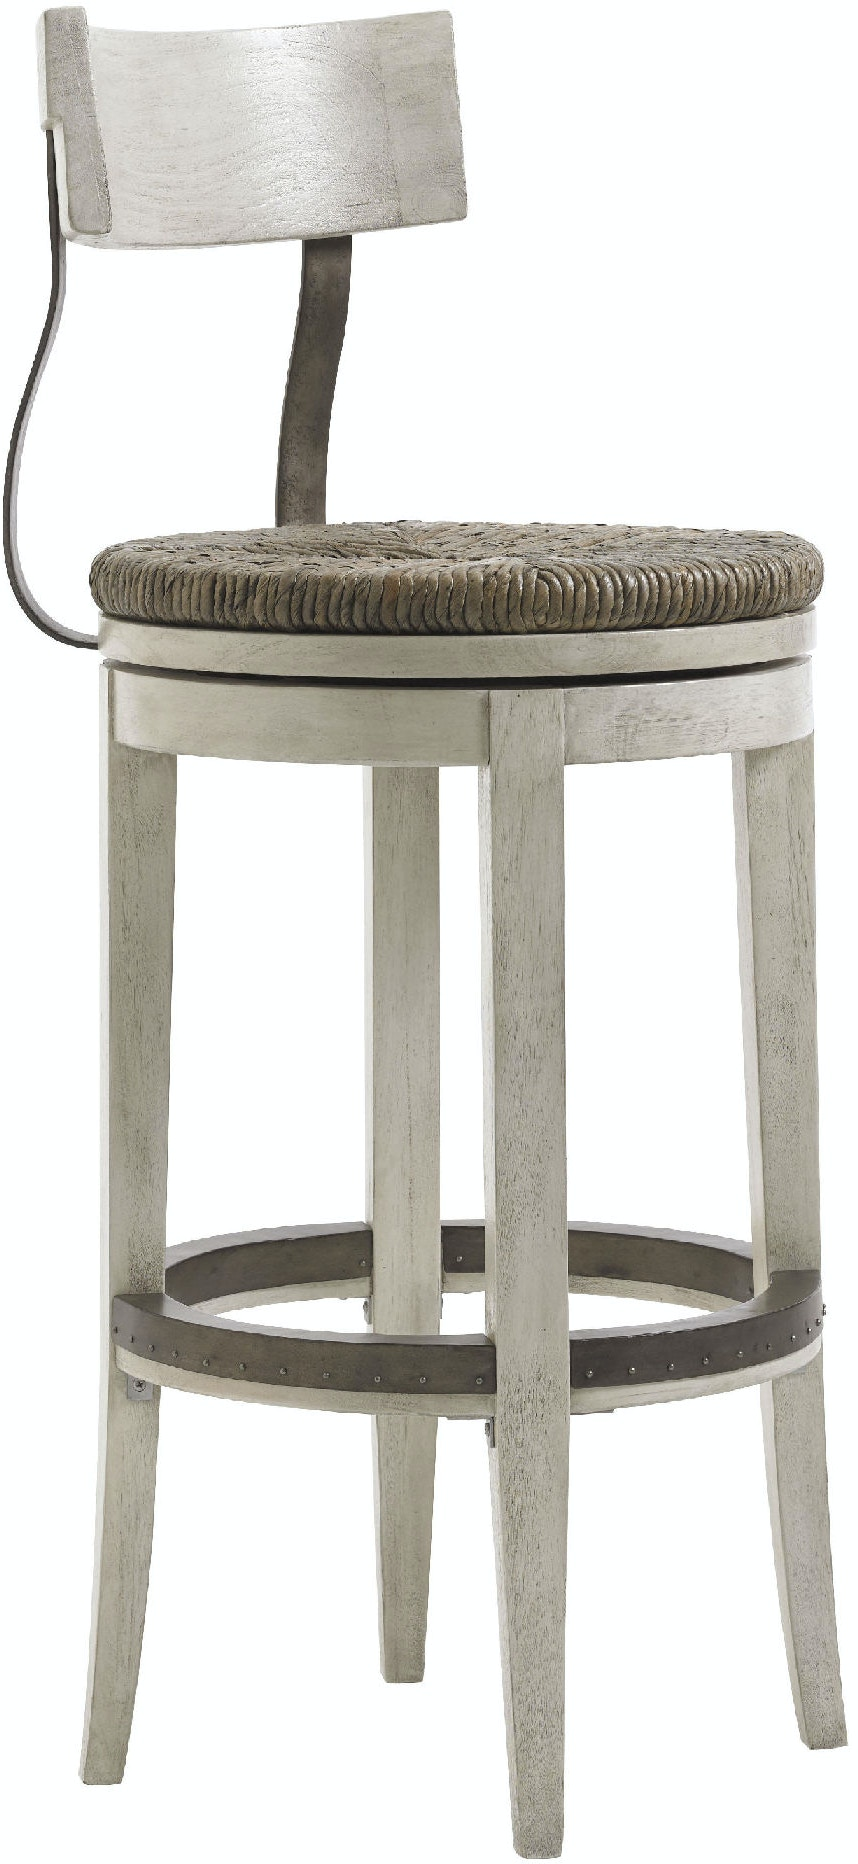 Lexington Bar And Game Room Merrick Swivel Bar Stool 714